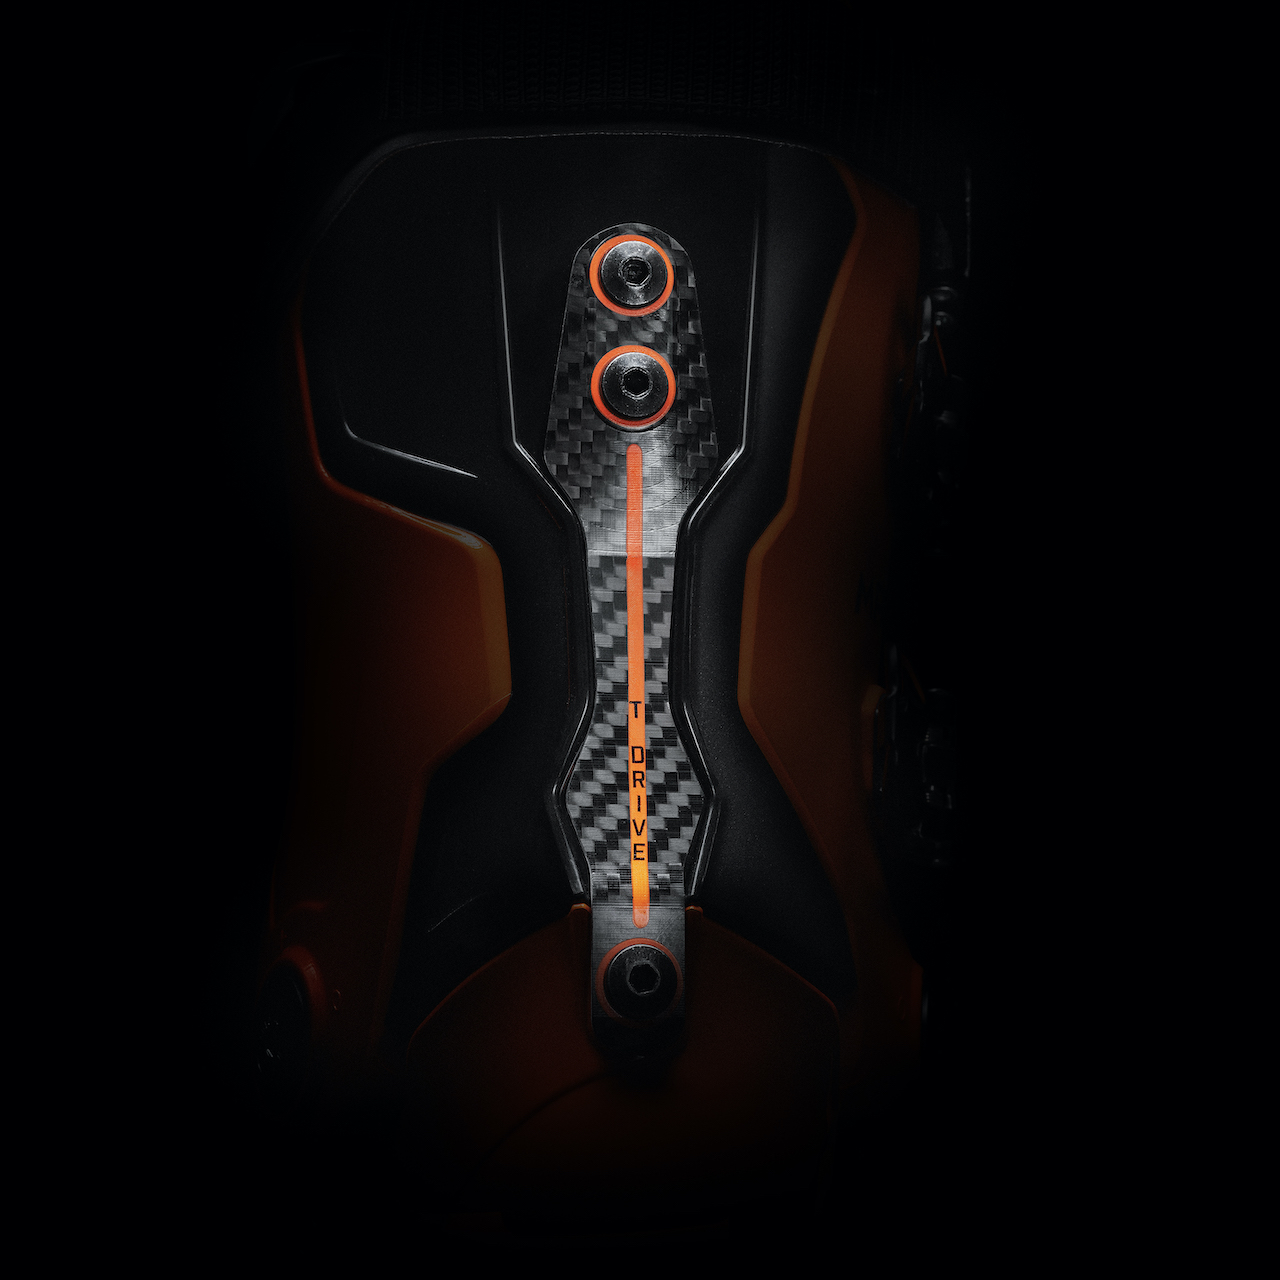 Blizzards-New-All-mountain-Skis-Tecnica-MACH1-BOOT-back-detail